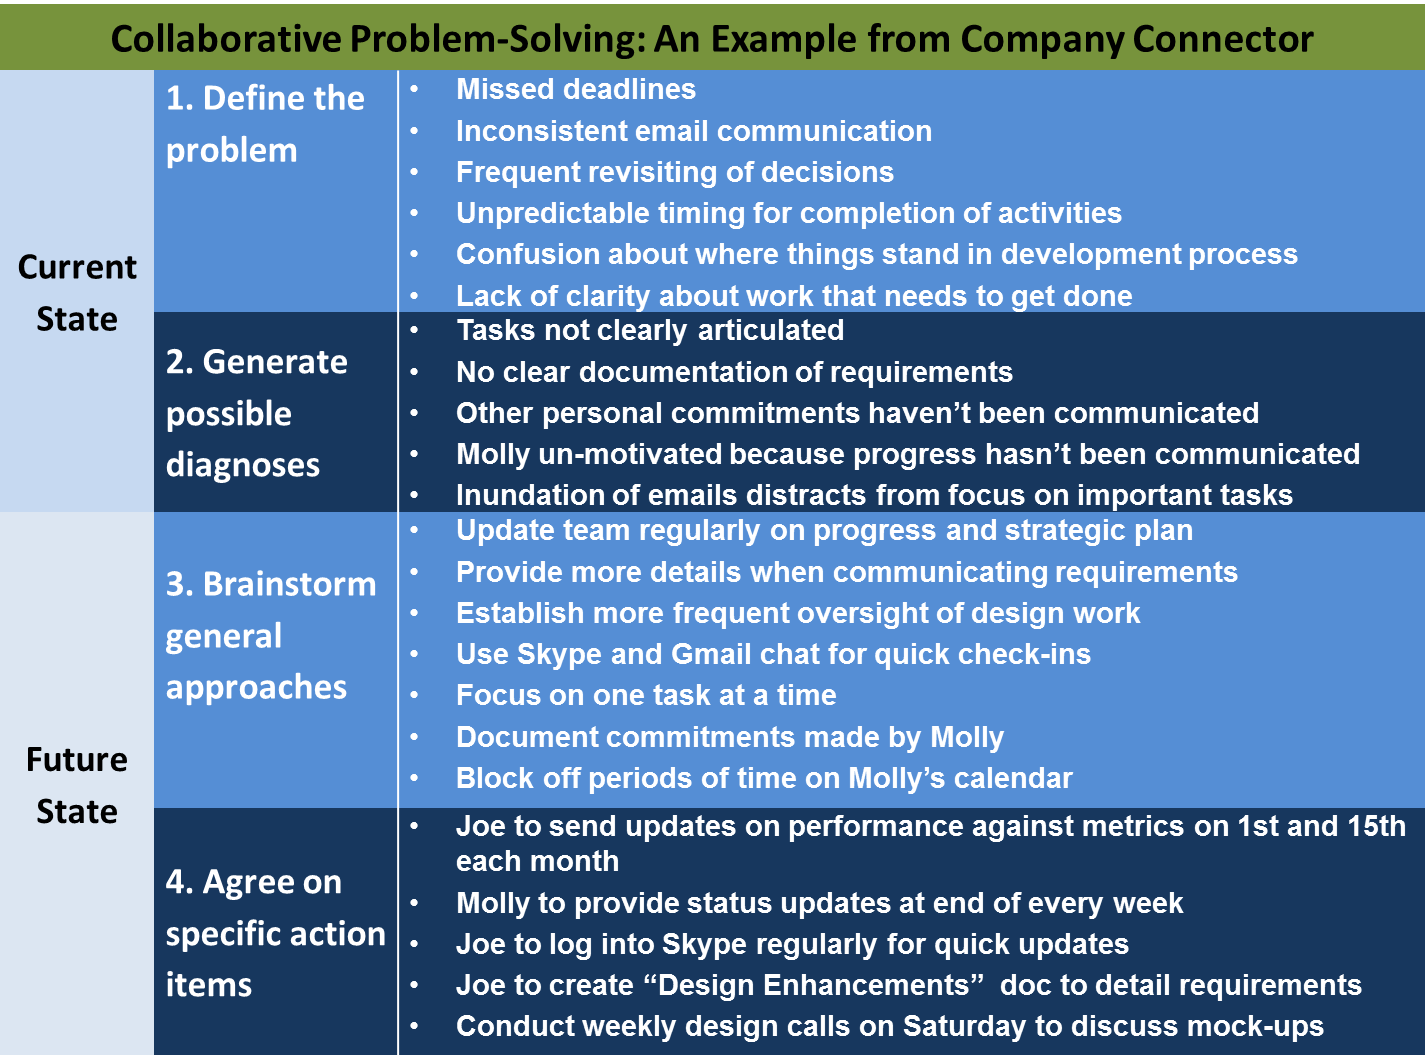 2013-05-02-Collaborativeproblemsolvinggraphic.png